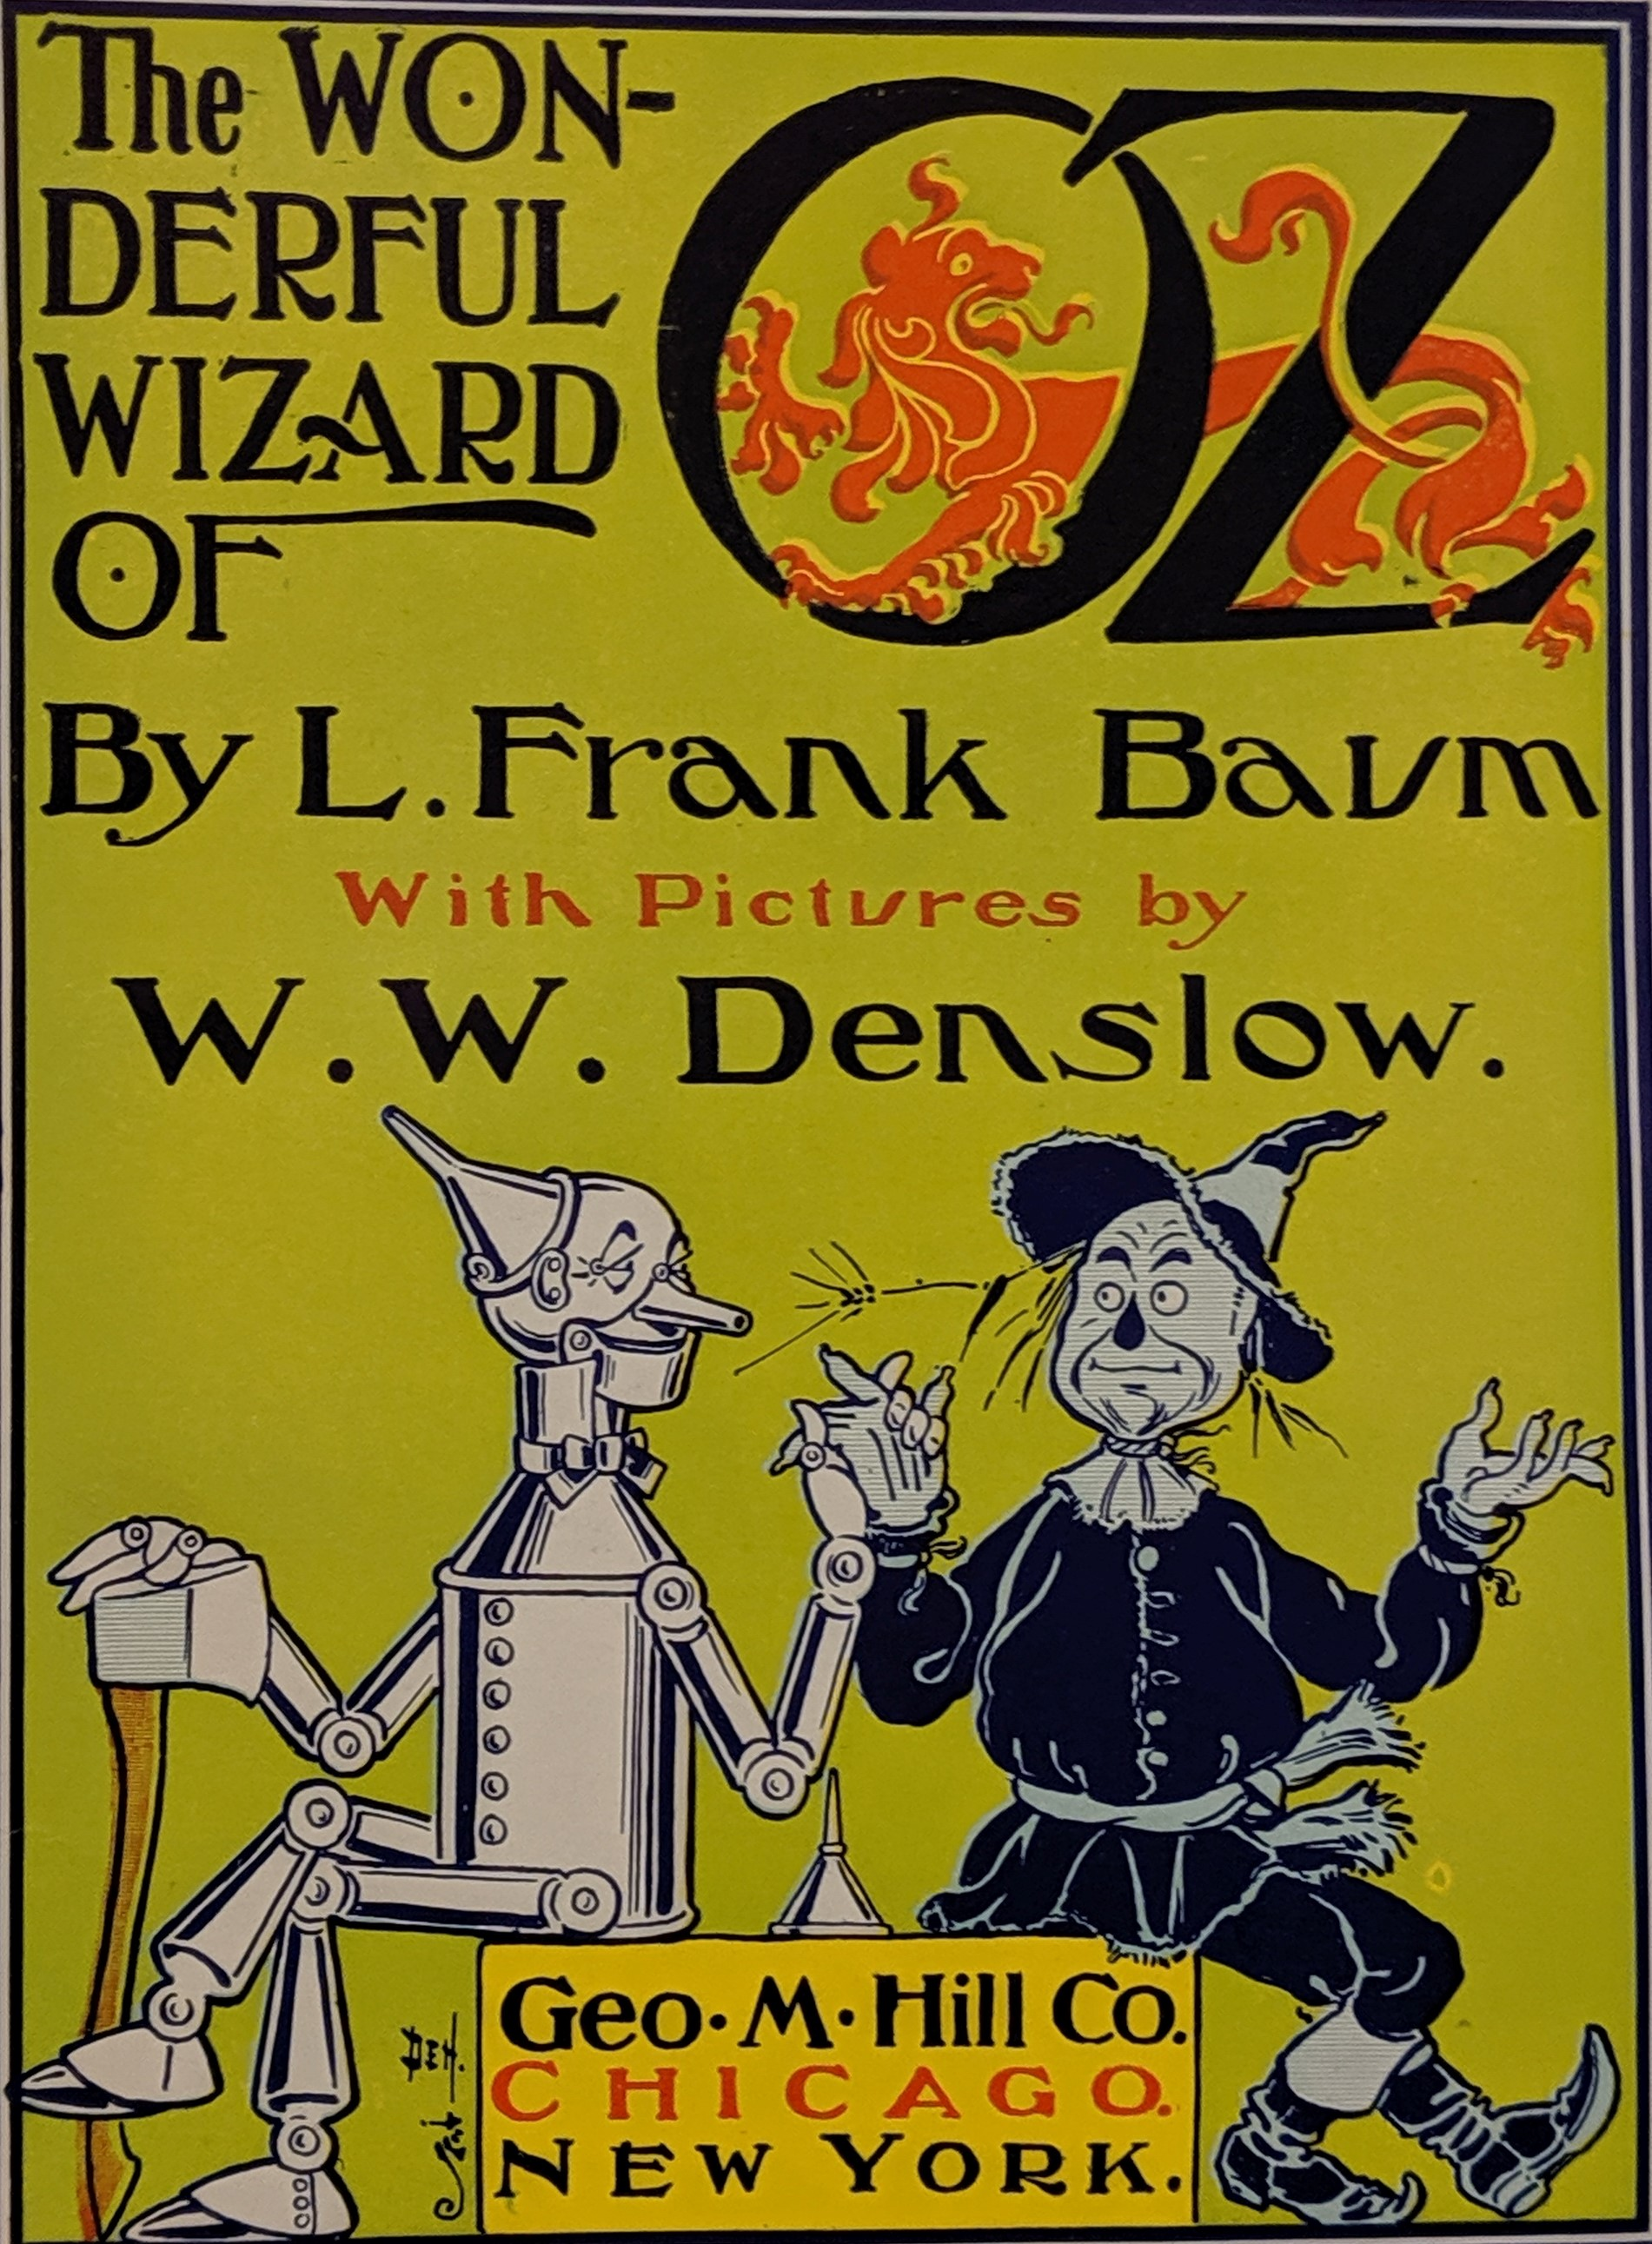 A Century of Whimsy